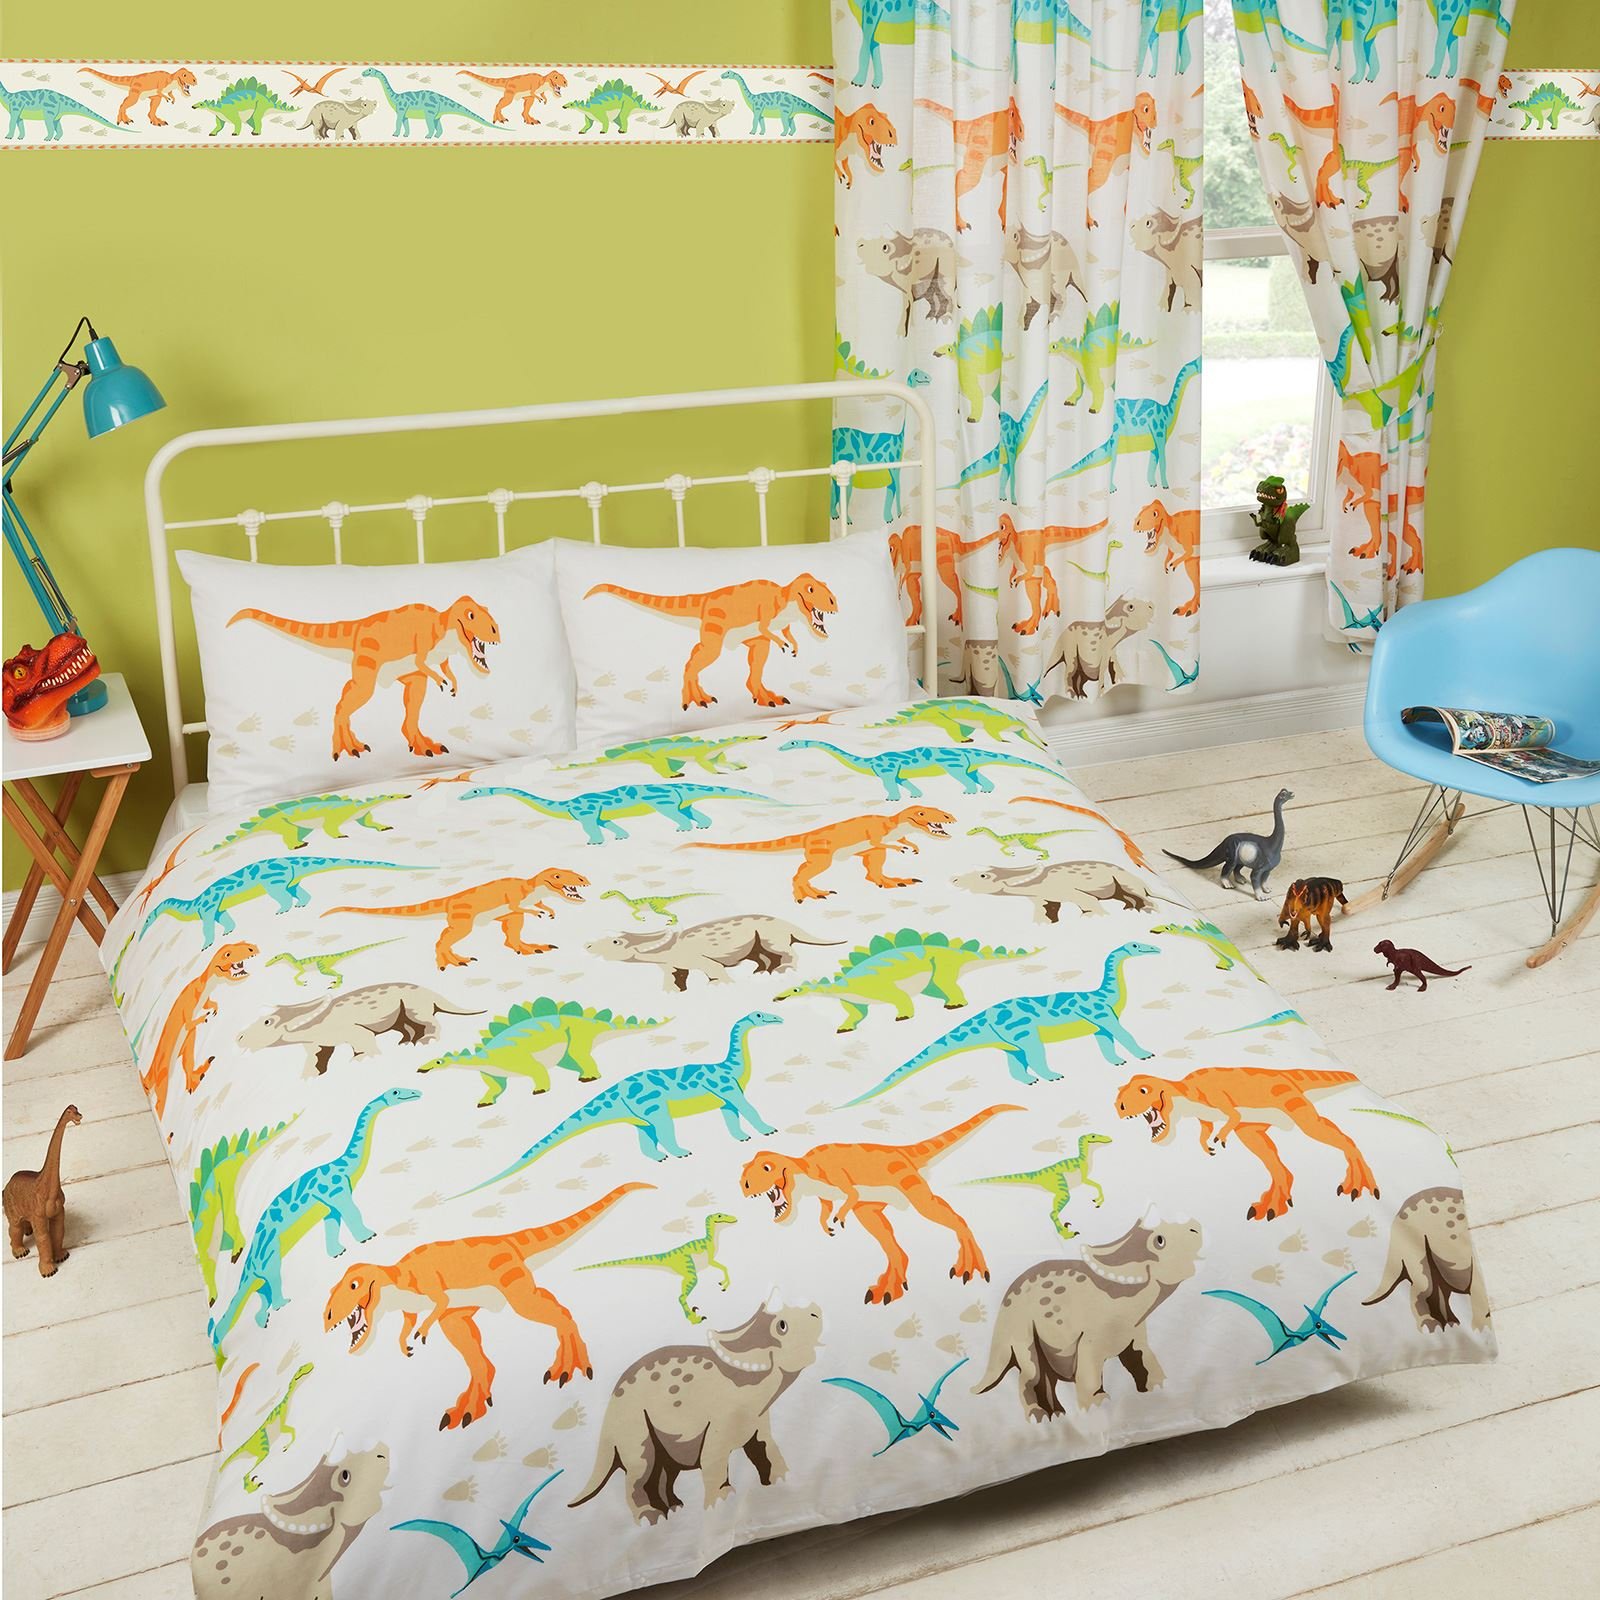 Home 187 unicorn quilt cover set return to previous page - Boys Bedding Single Double Junior Polycotton Duvet Covers